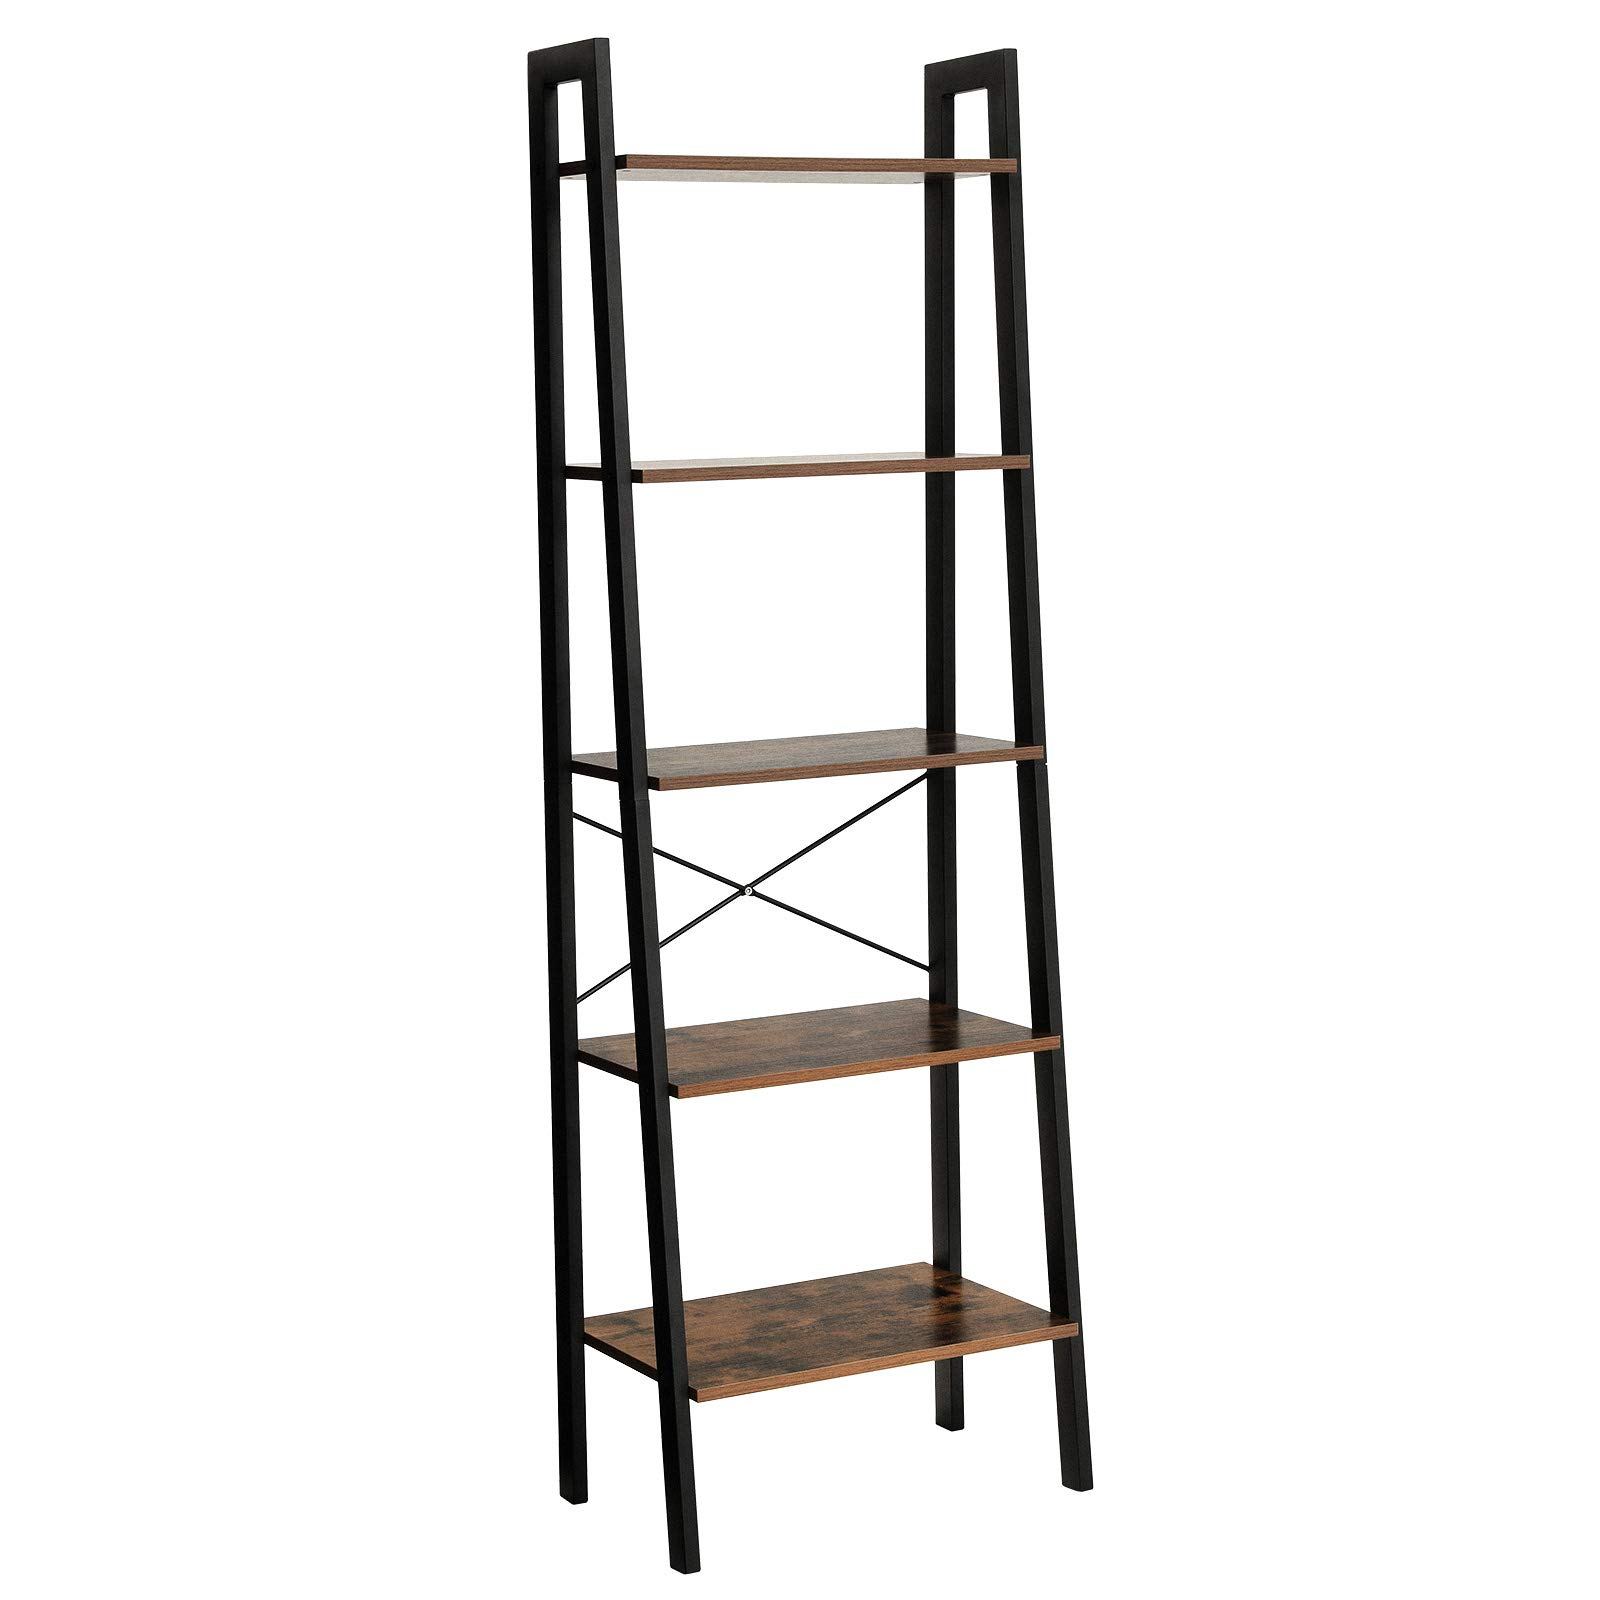 VASAGLE Industrial Ladder Shelf, 5-Tier Bookshelf, Bookcase and Storage Rack, Wood Look Accent Furniture with Metal Frame, for Home Office, Rustic Brown ULLS45X by VASAGLE